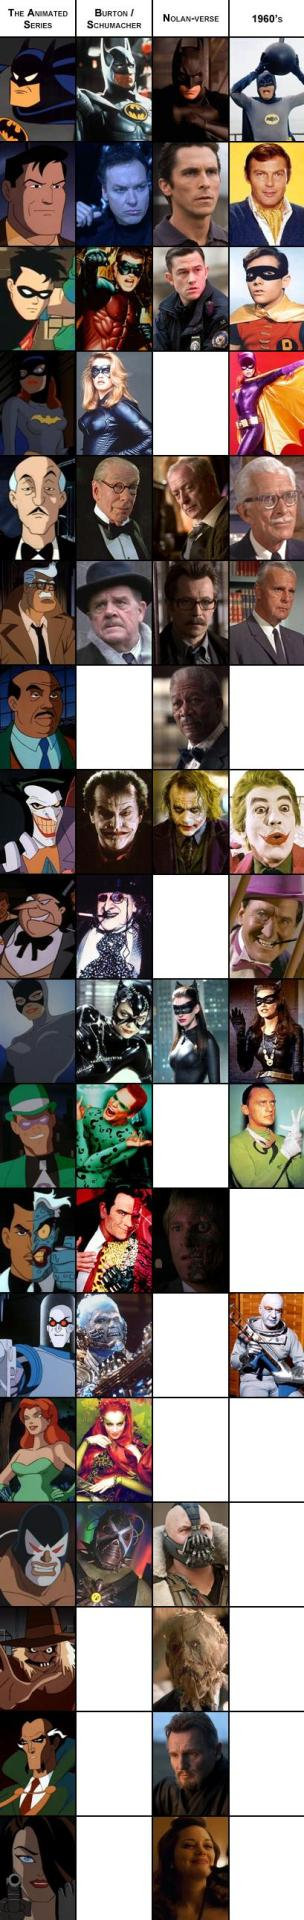 A visual comparison of Batman character looks & casting between: the Animated Series, Burton's movies, Nolan's movies, and the 1960's show. (via Reddit.com)